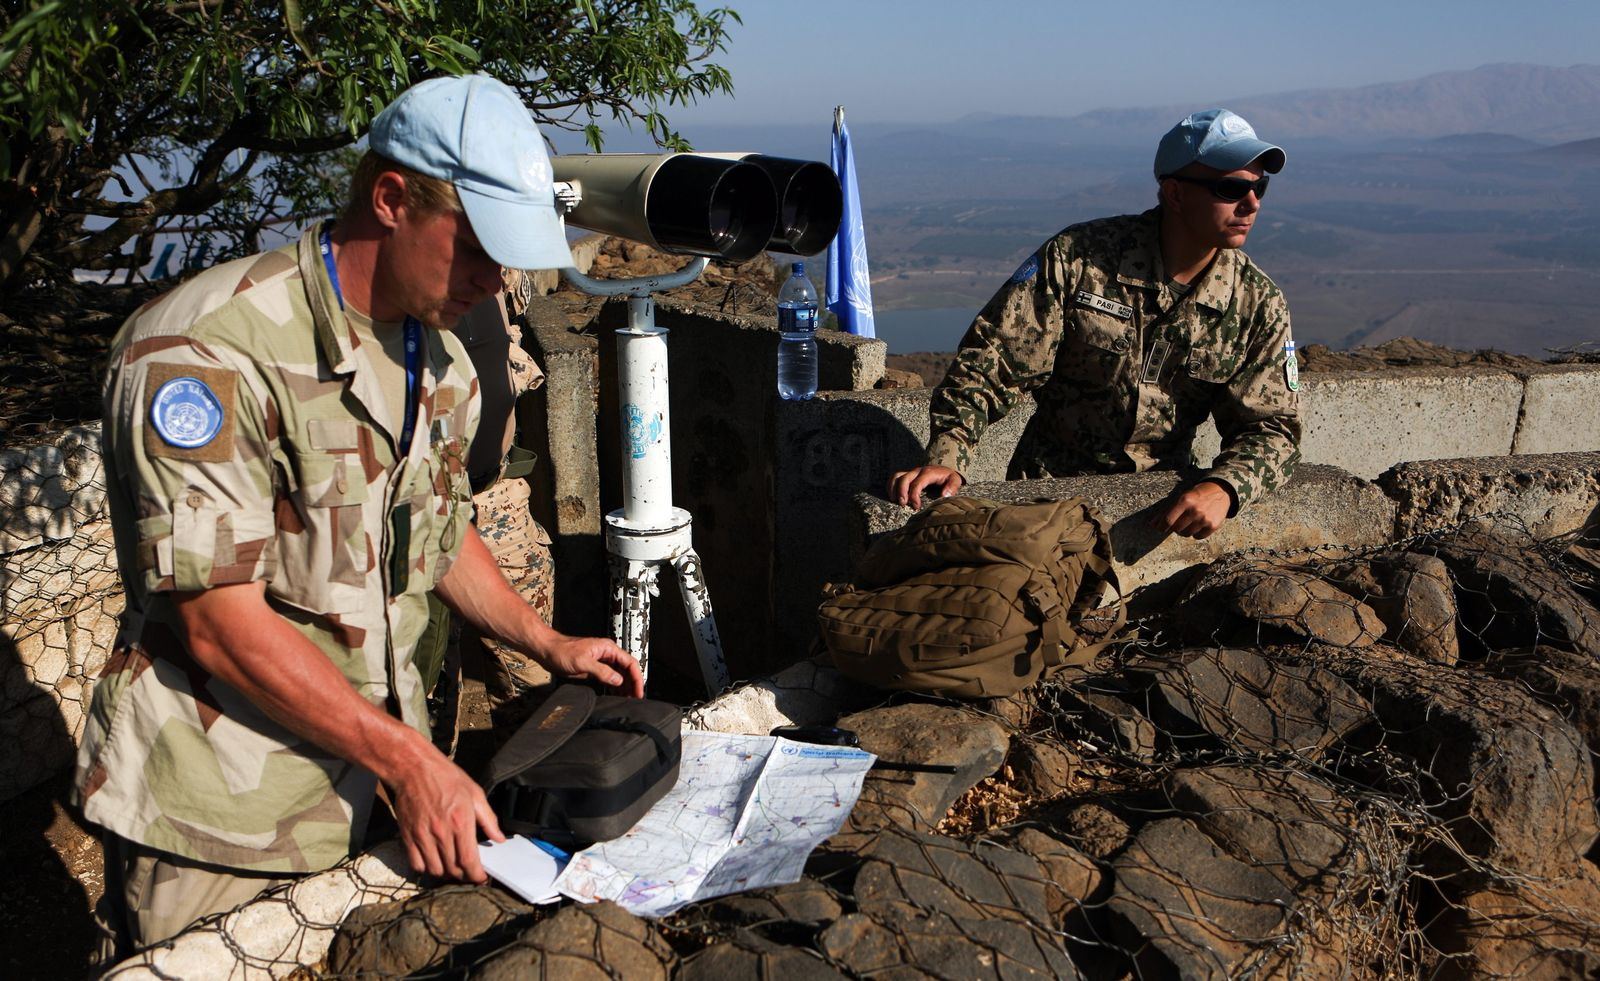 UN Peacekeepers at Golan Heights